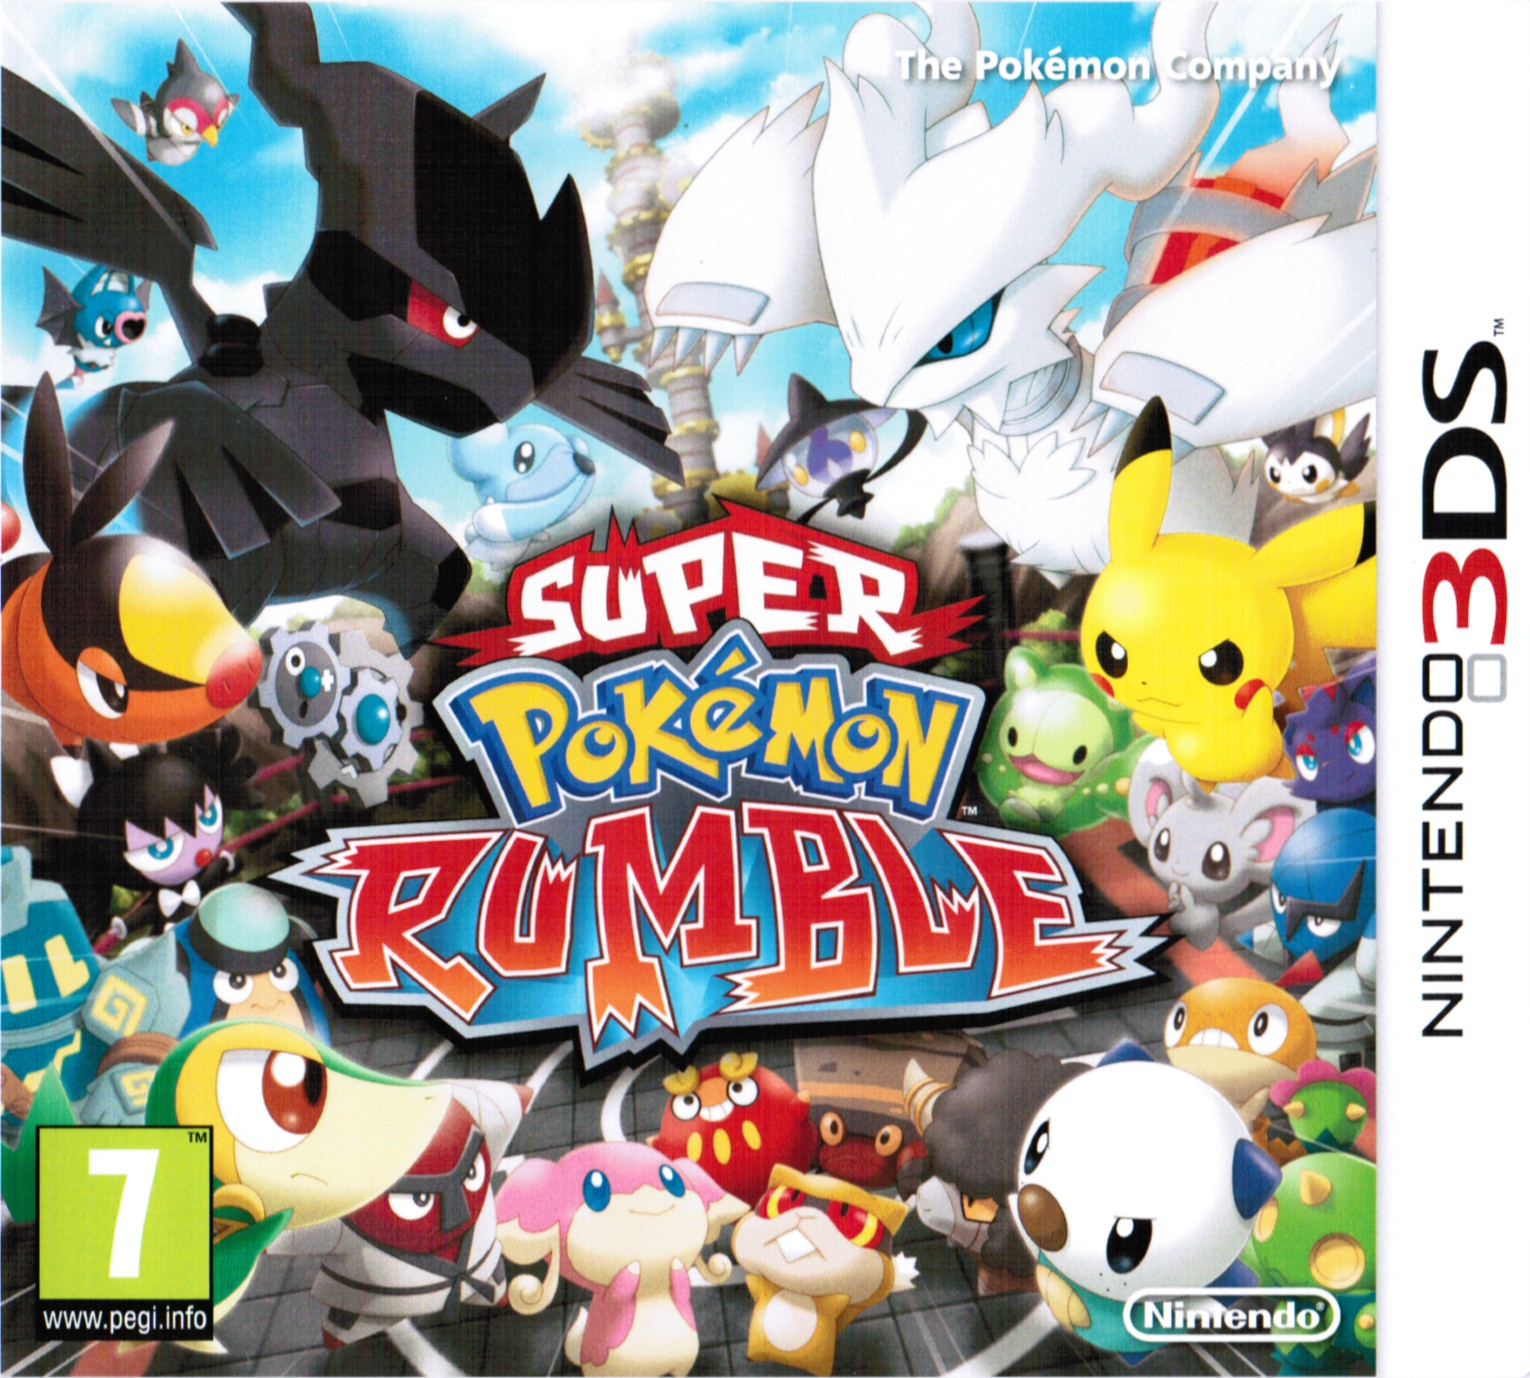 Pokemon_rumble_blast_box-art.jpg